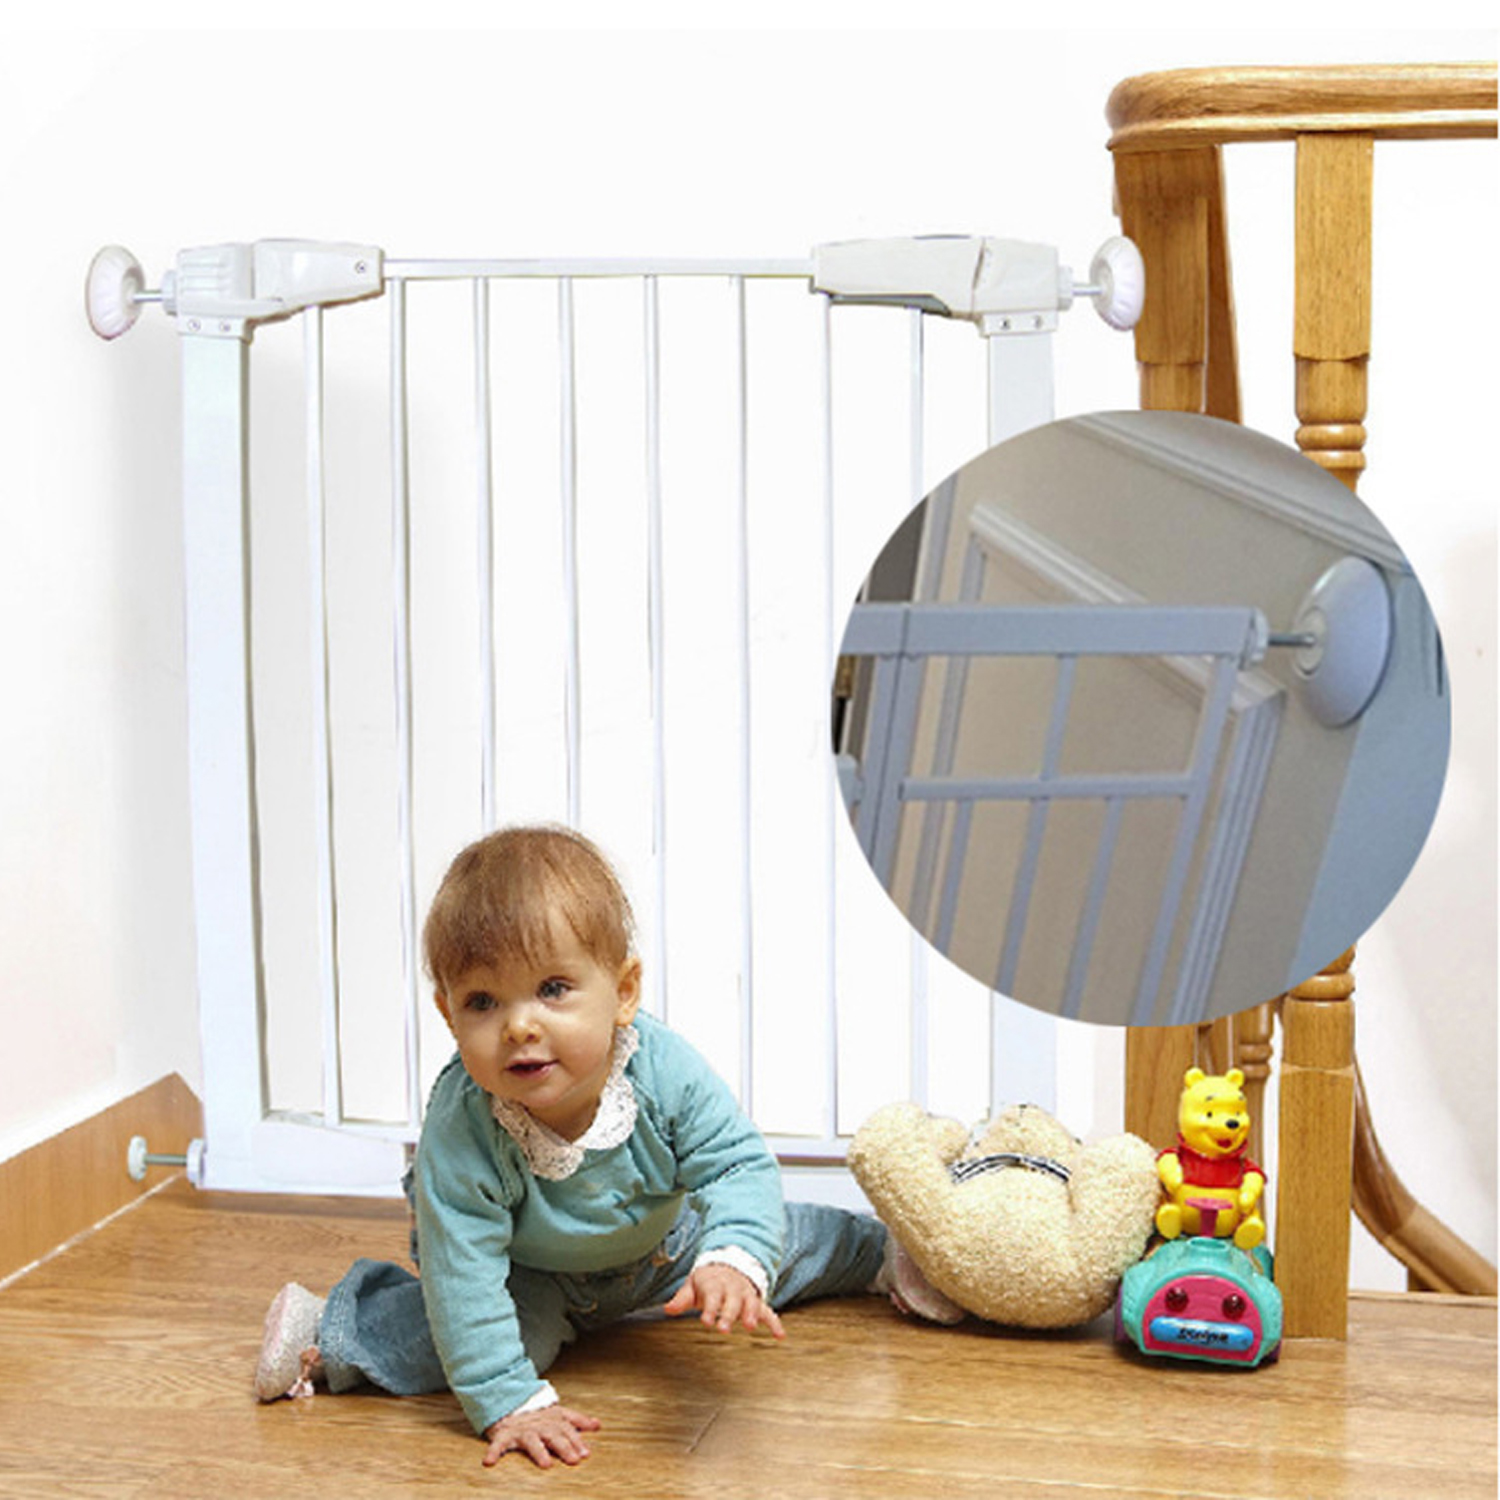 Baby Safety Wall Guard Pads Protector for Child or Pet Pressure Gates 4 Pack